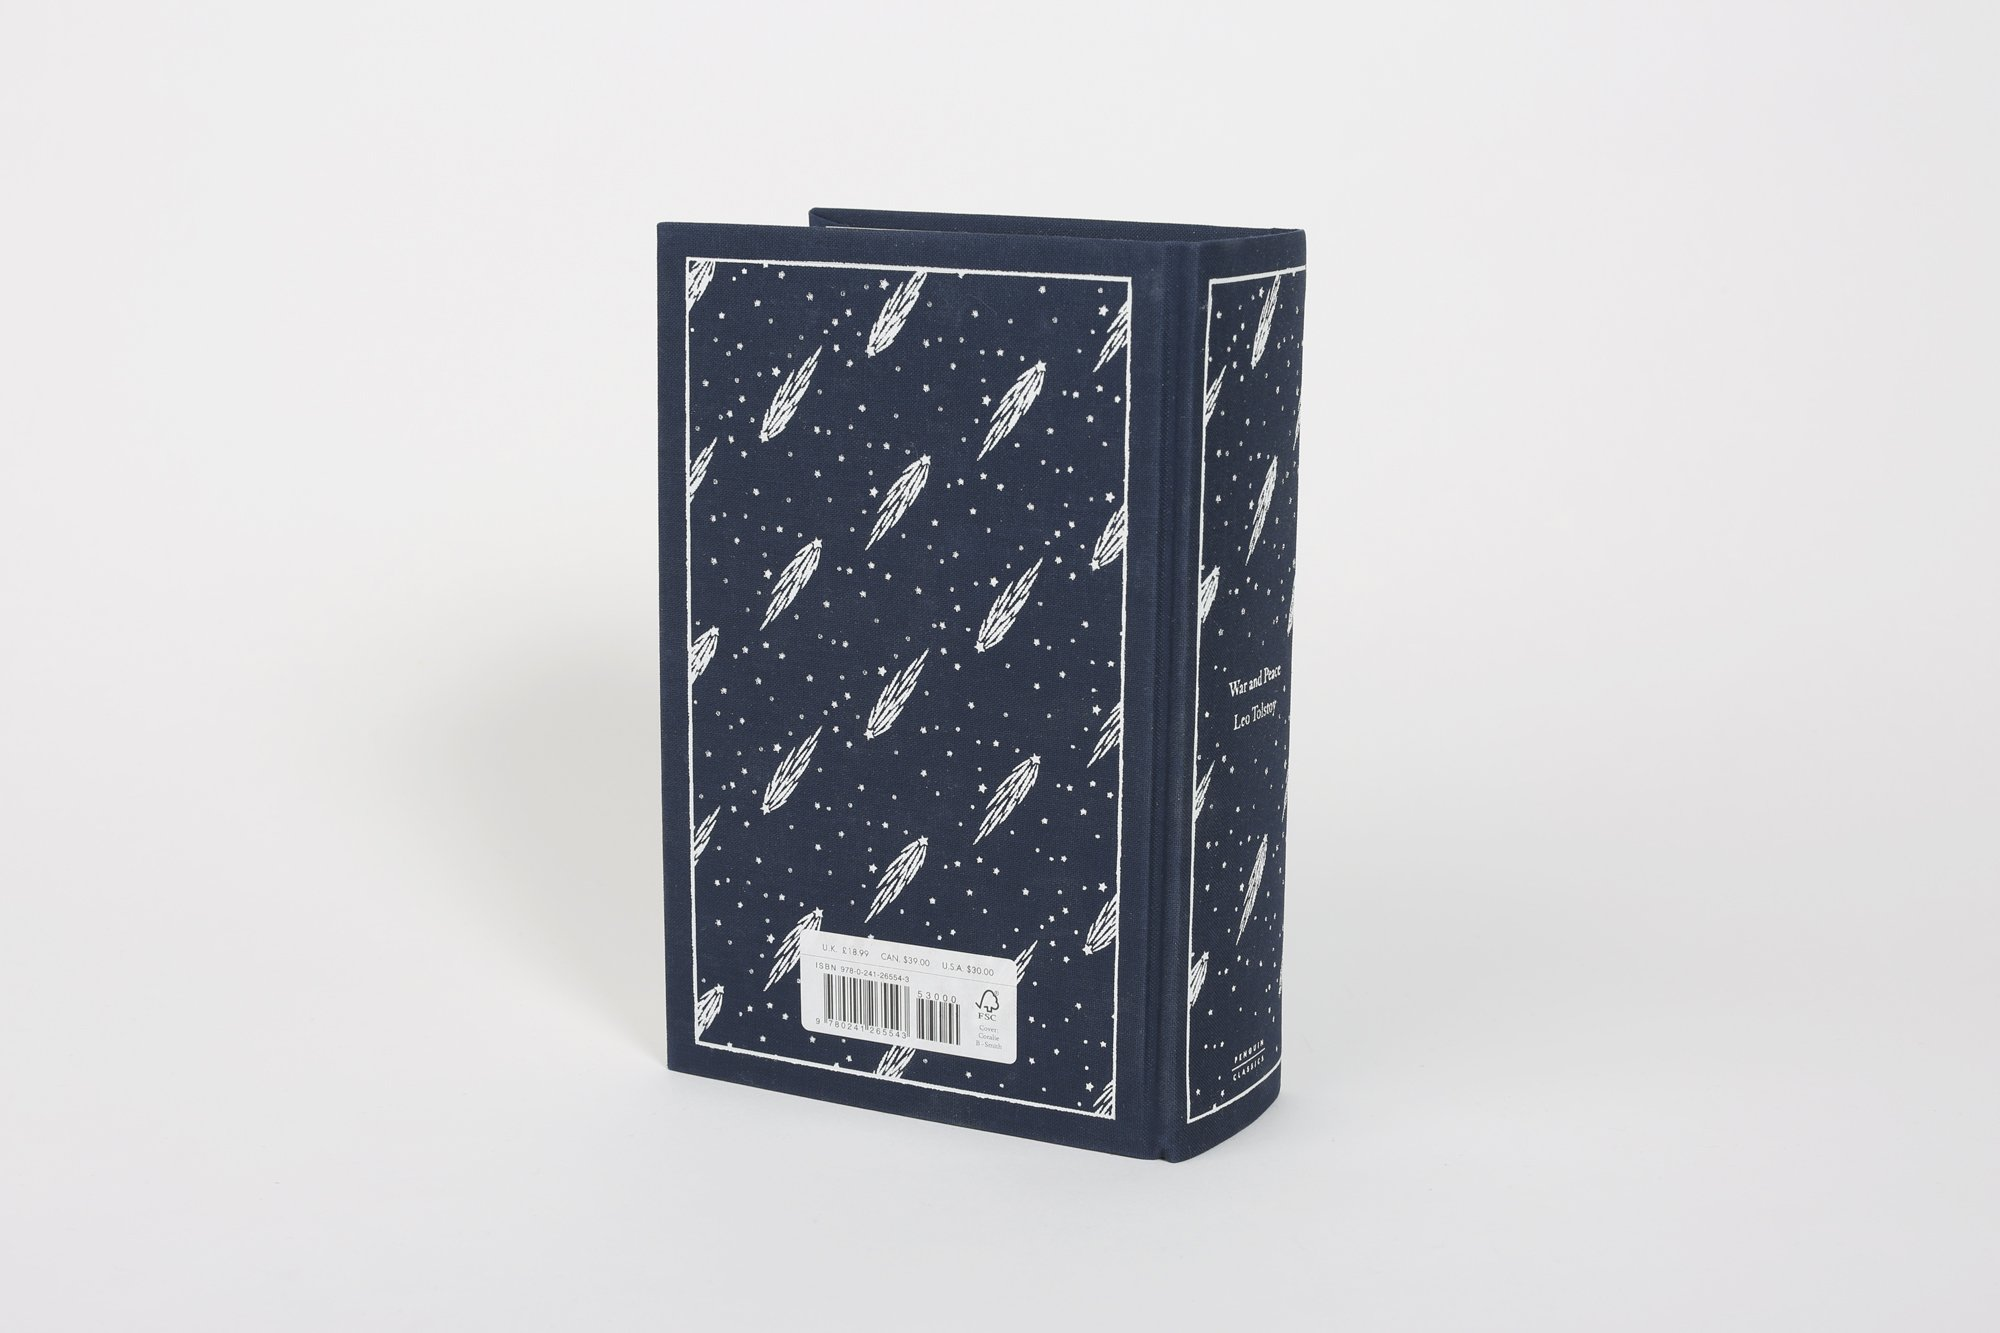 War and peace (penguin classics) by leo tolstoy: penguin classics.